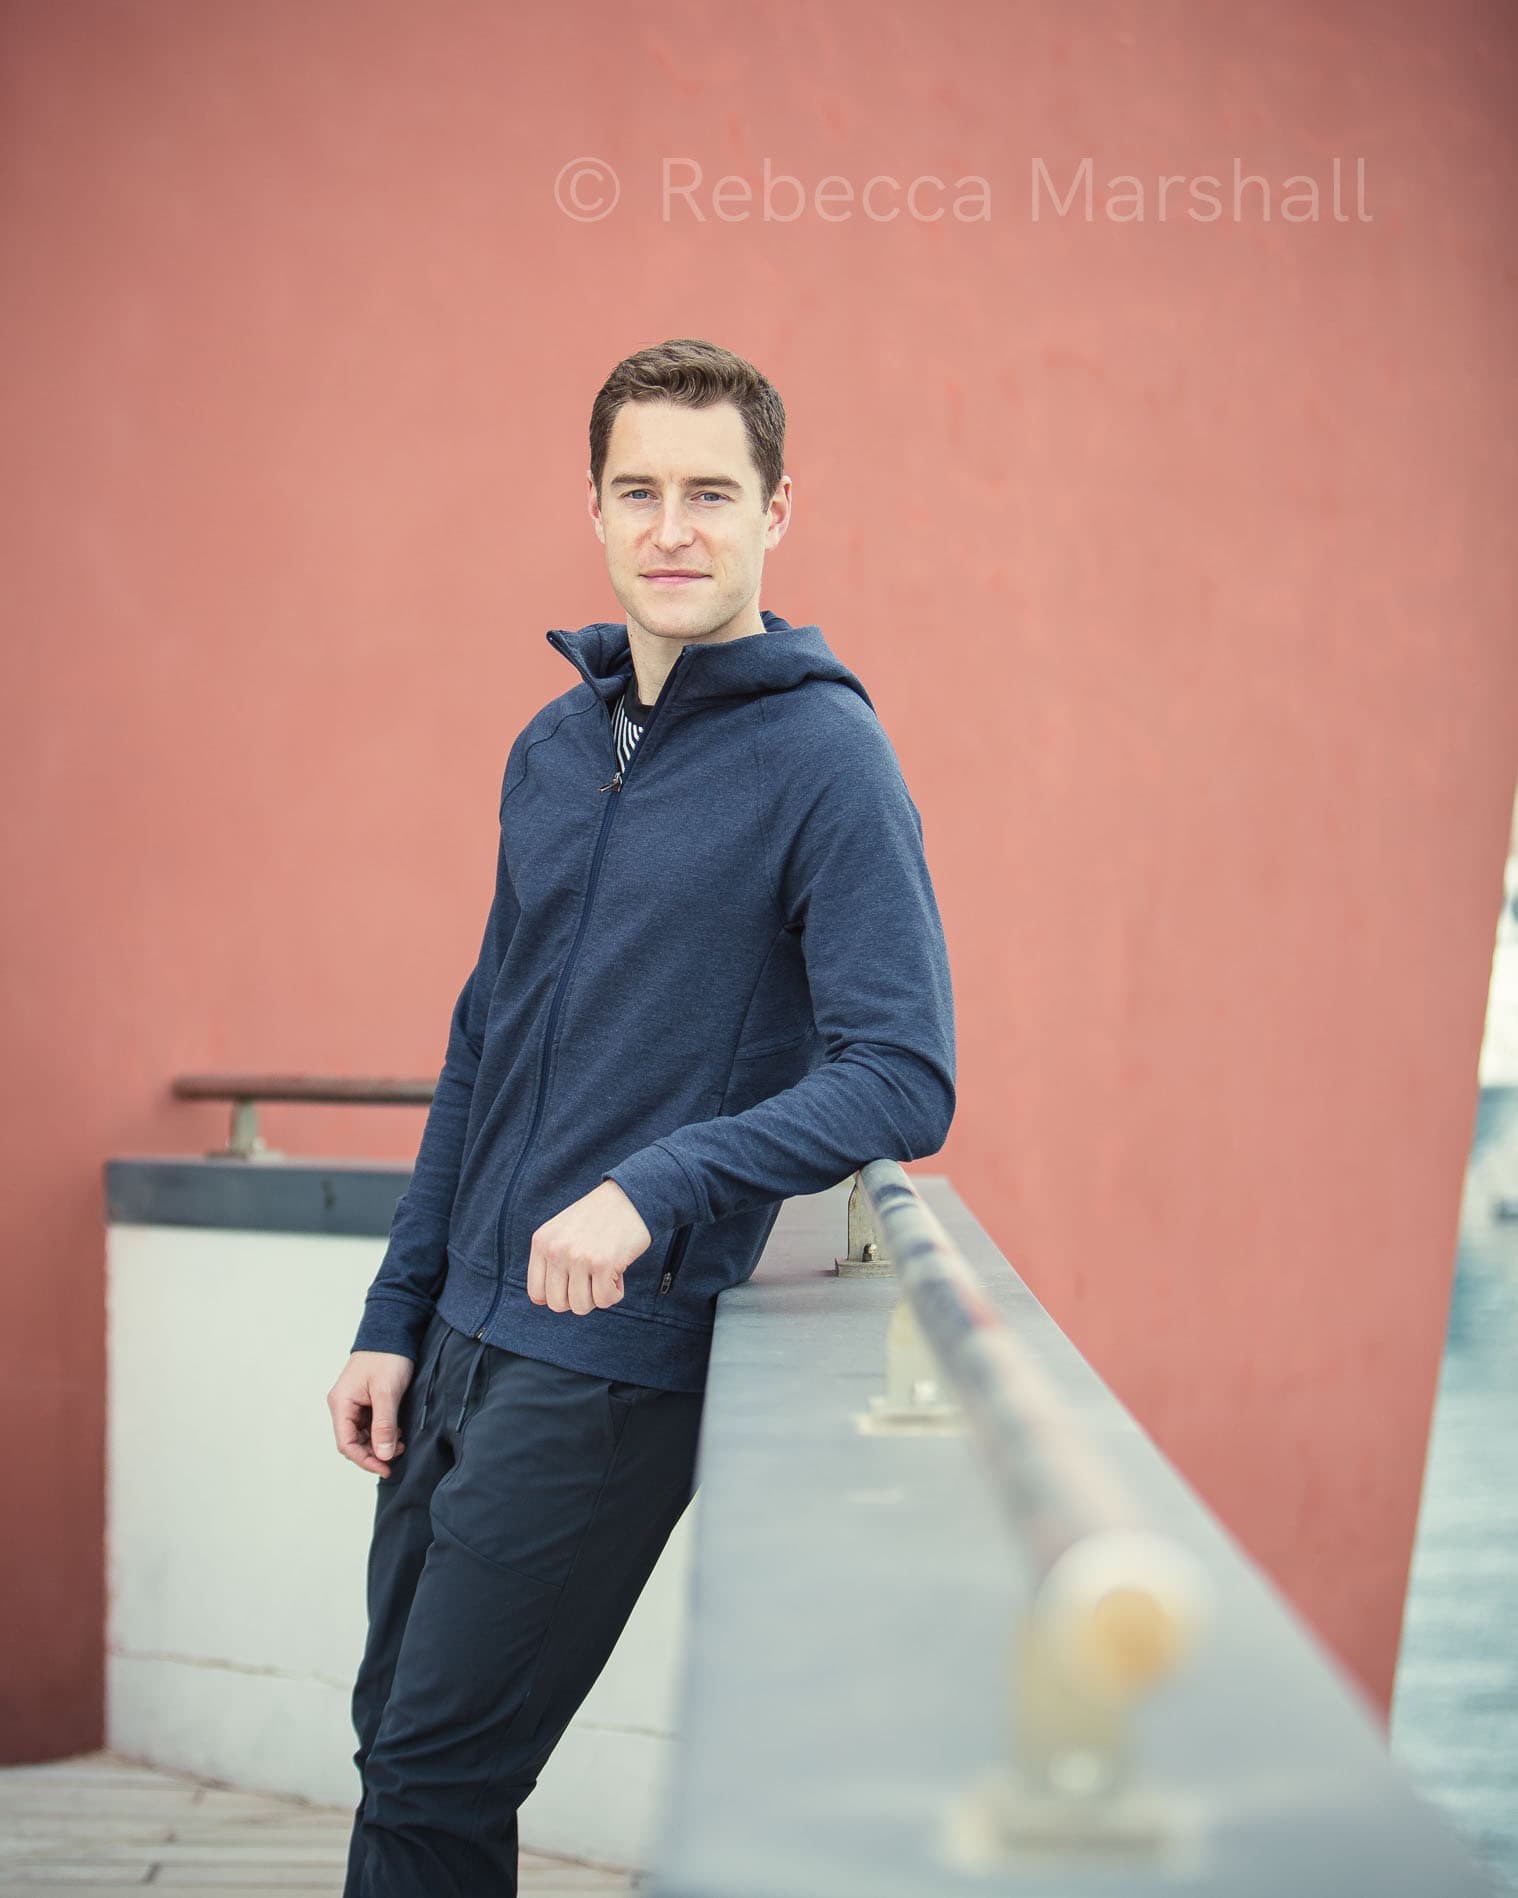 Portrait of a man in a blue tracksuit leaning on a railing in front of a red wall